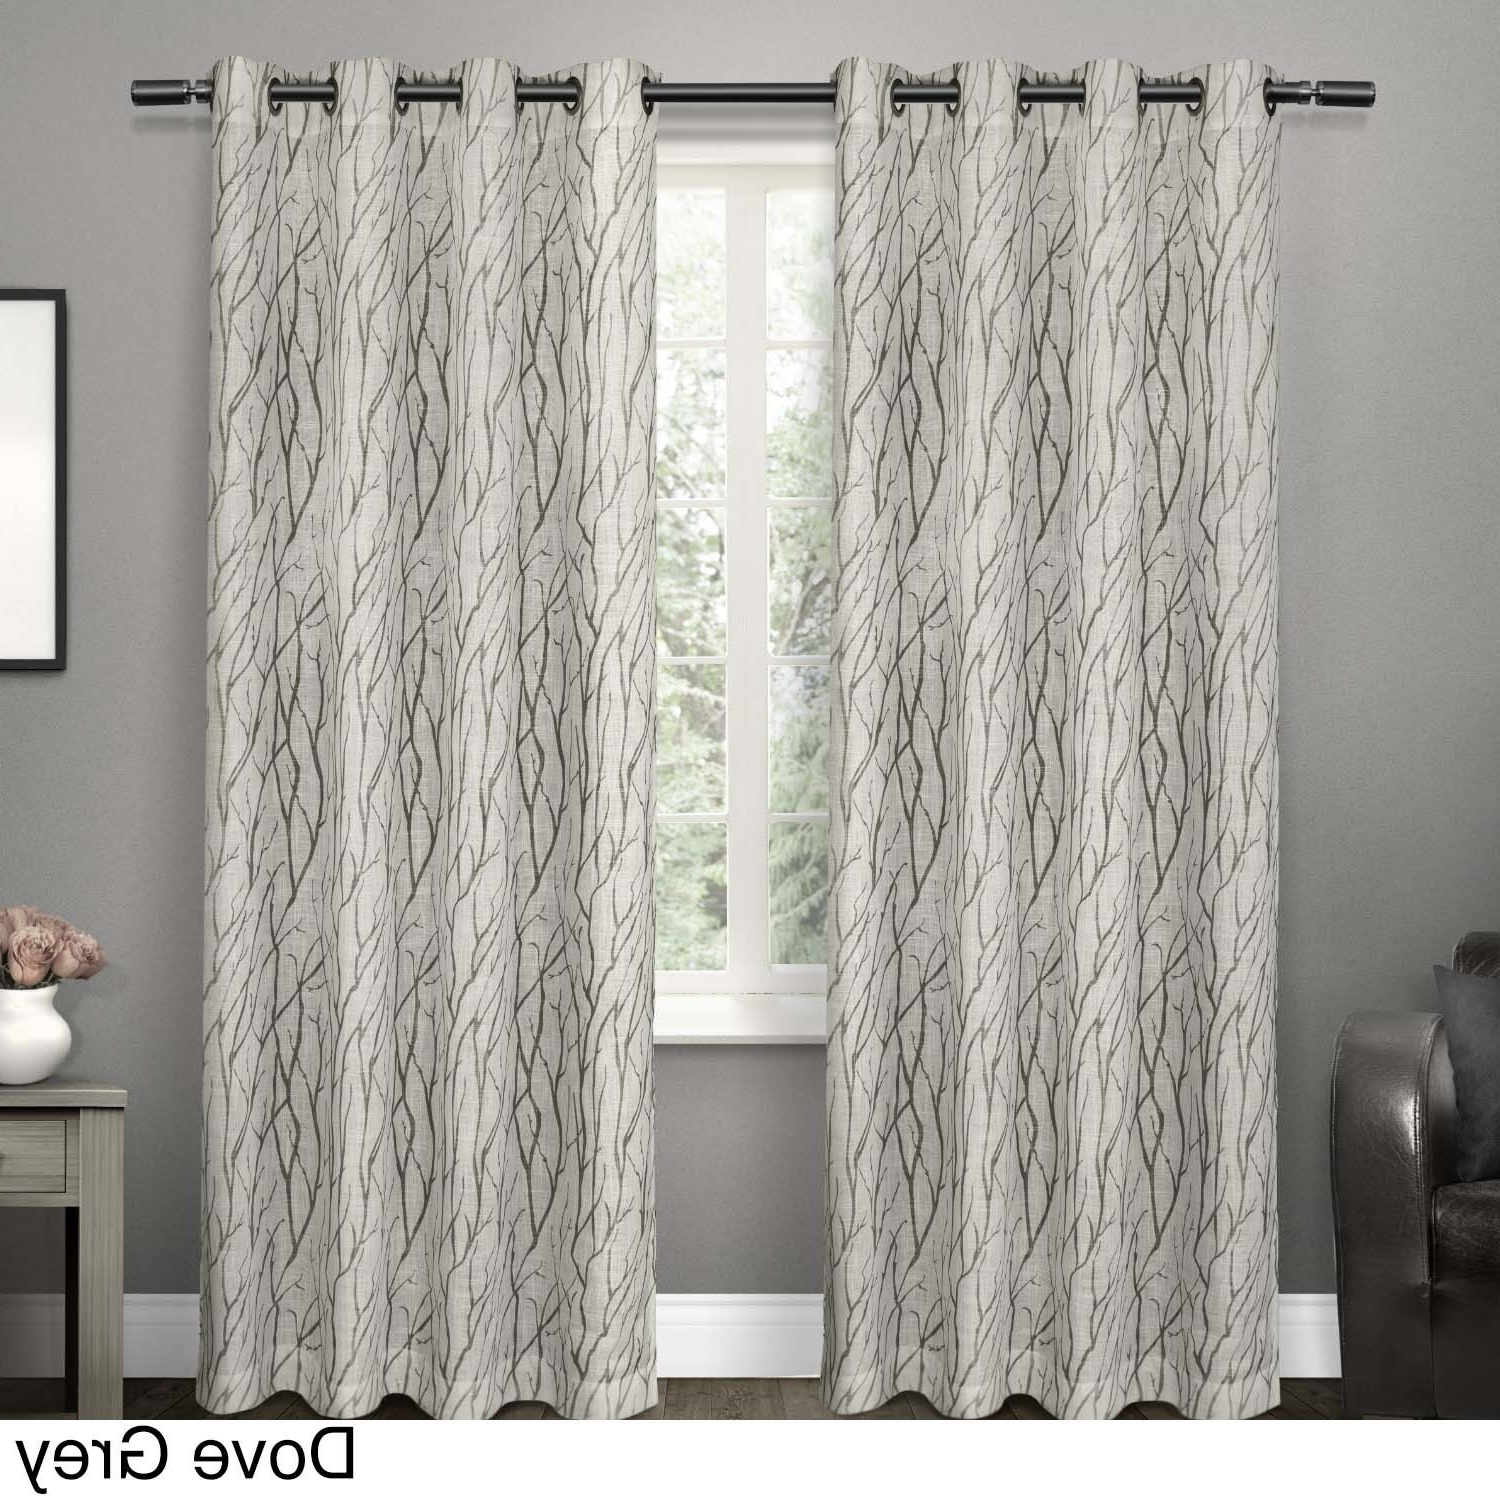 Oakdale Textured Linen Sheer Grommet Top Curtain Panel Pairs Within Well Known Shop Ati Home Oakdale Textured Linen Sheer Grommet Top (View 16 of 20)